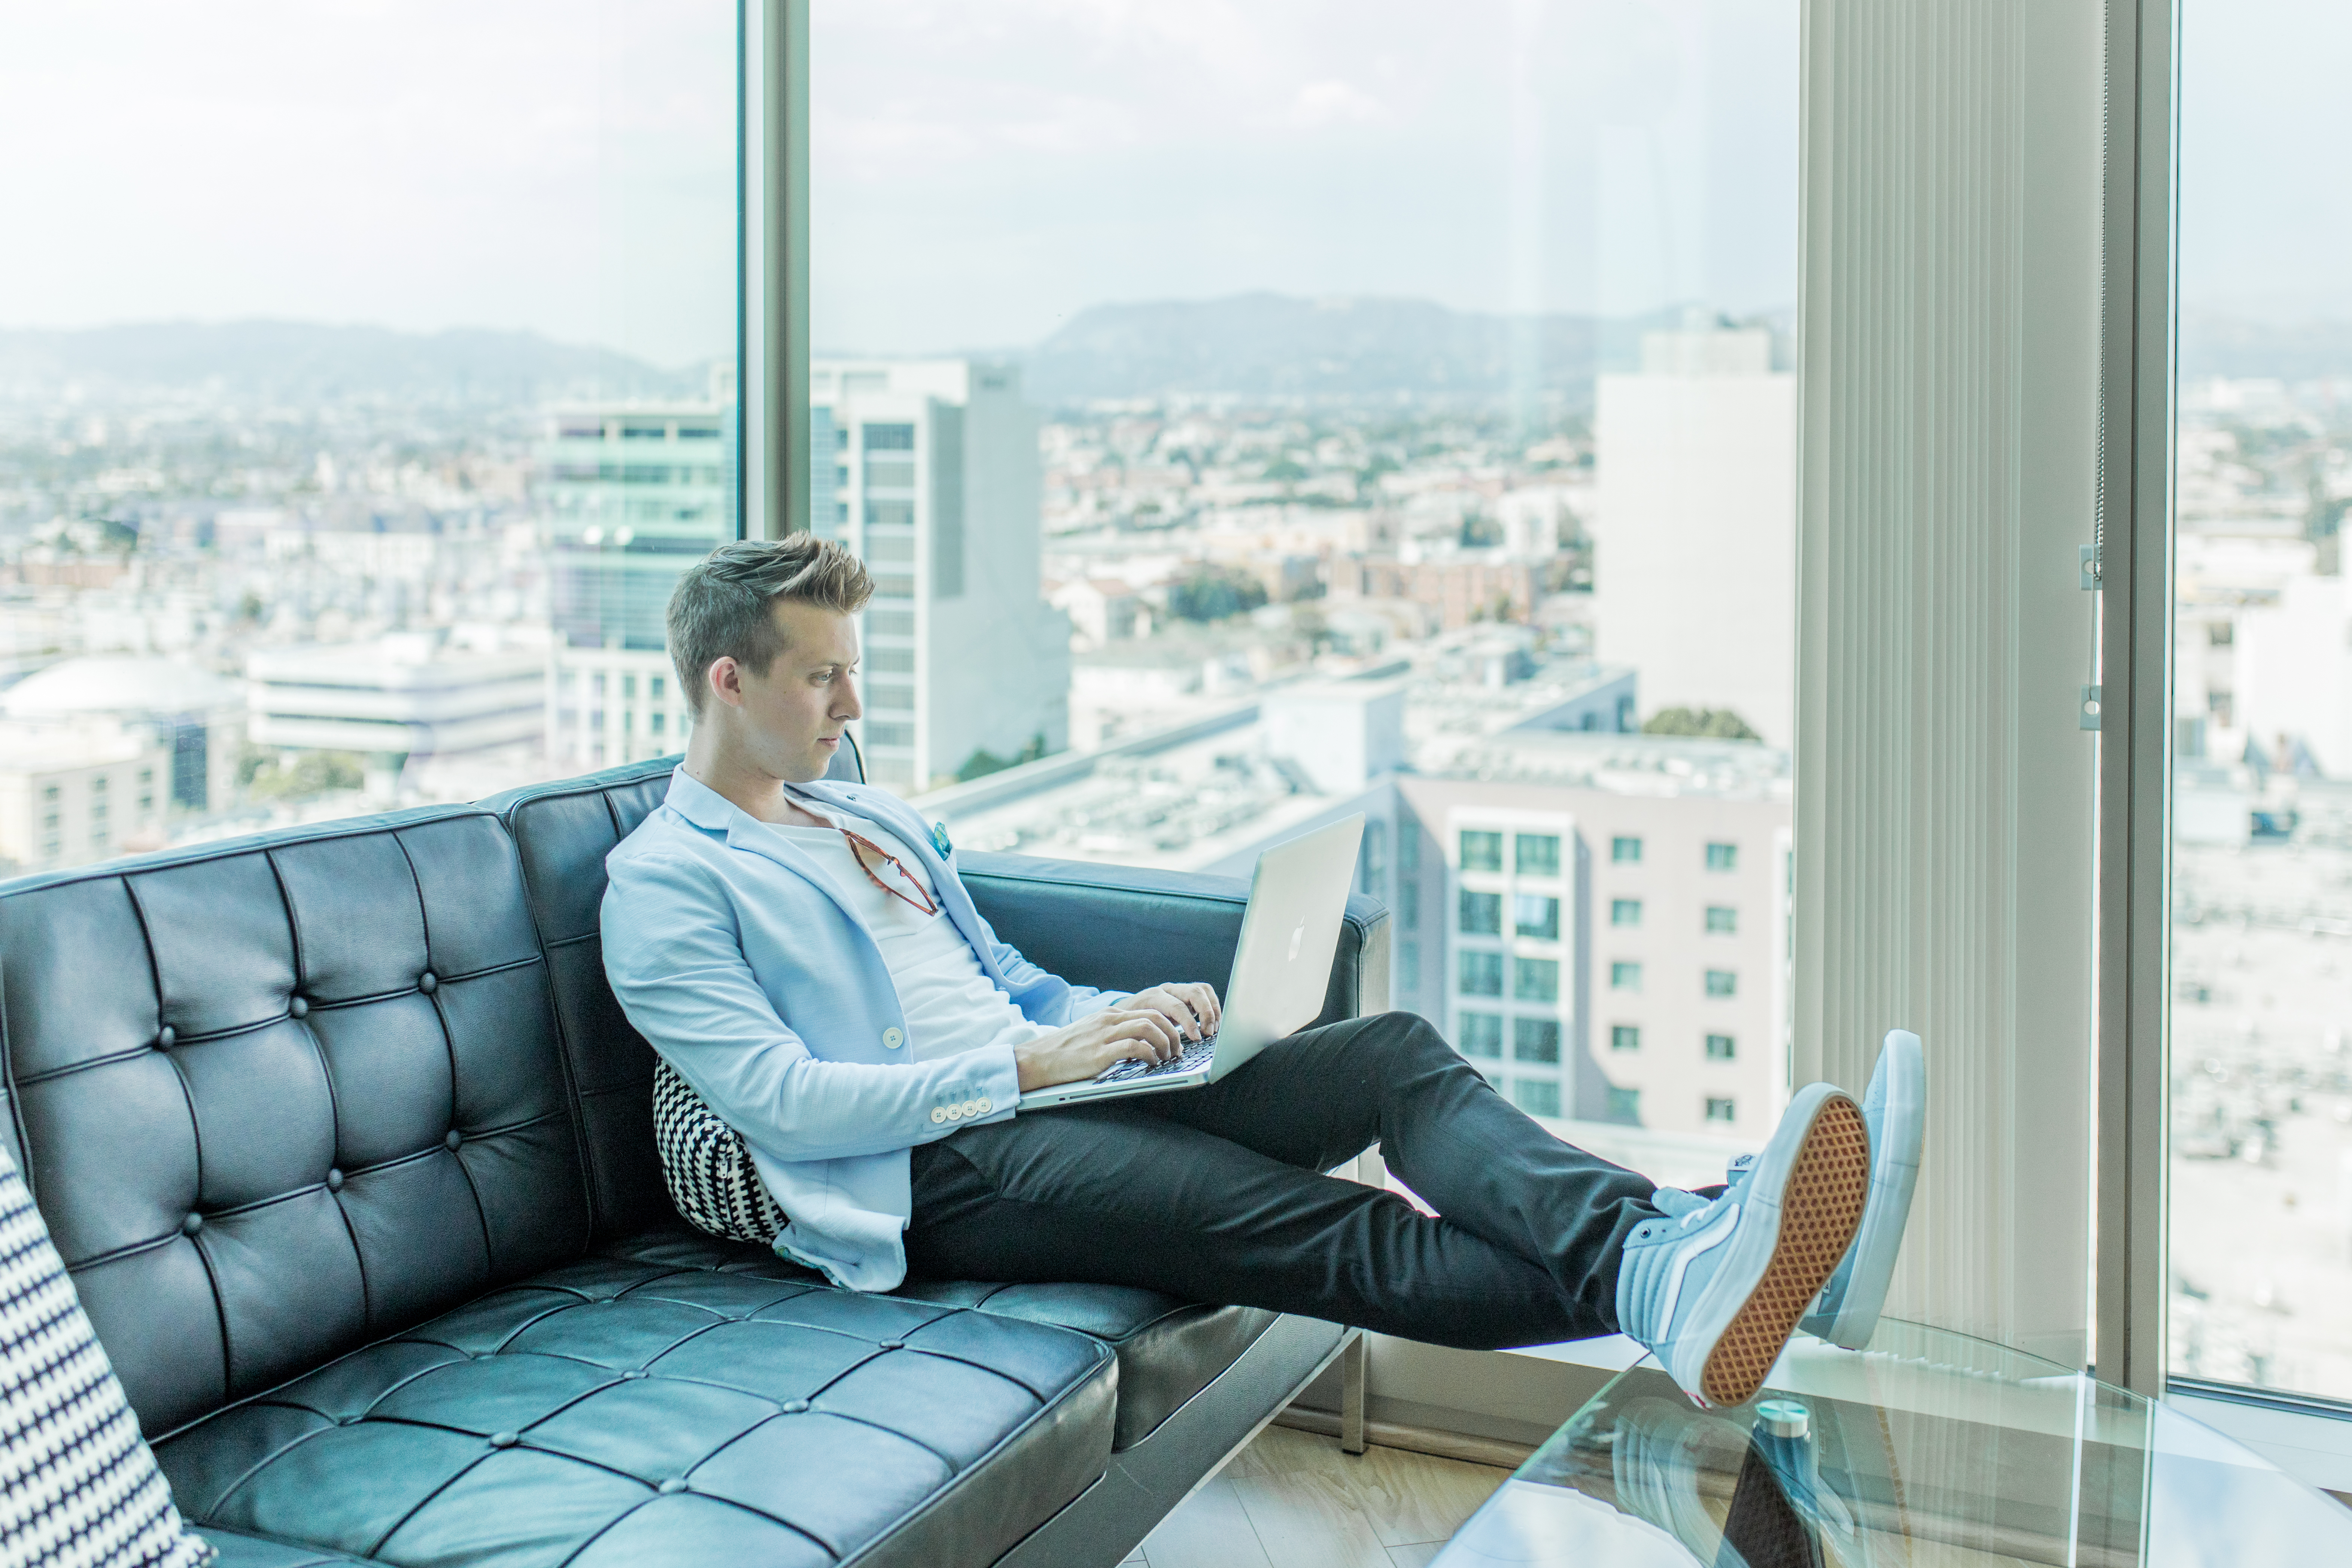 This Entrepreneur, Austin Distel, is blogging on his laptop about building a social media marketing strategy to showing bloggers how to make money on Facebook, Pinterest, and Instagram. His business has become a technology company, selling software and day trading cryptocurrency on the blockchain. Model: @Austindistel https://www.instagram.com/austindistel/ Photographer: @breeandstephen https://www.instagram.com/breeandstephen/ This photo is free for public use. ❤️ If you do use this photo, Please credit in caption or metadata with link to \